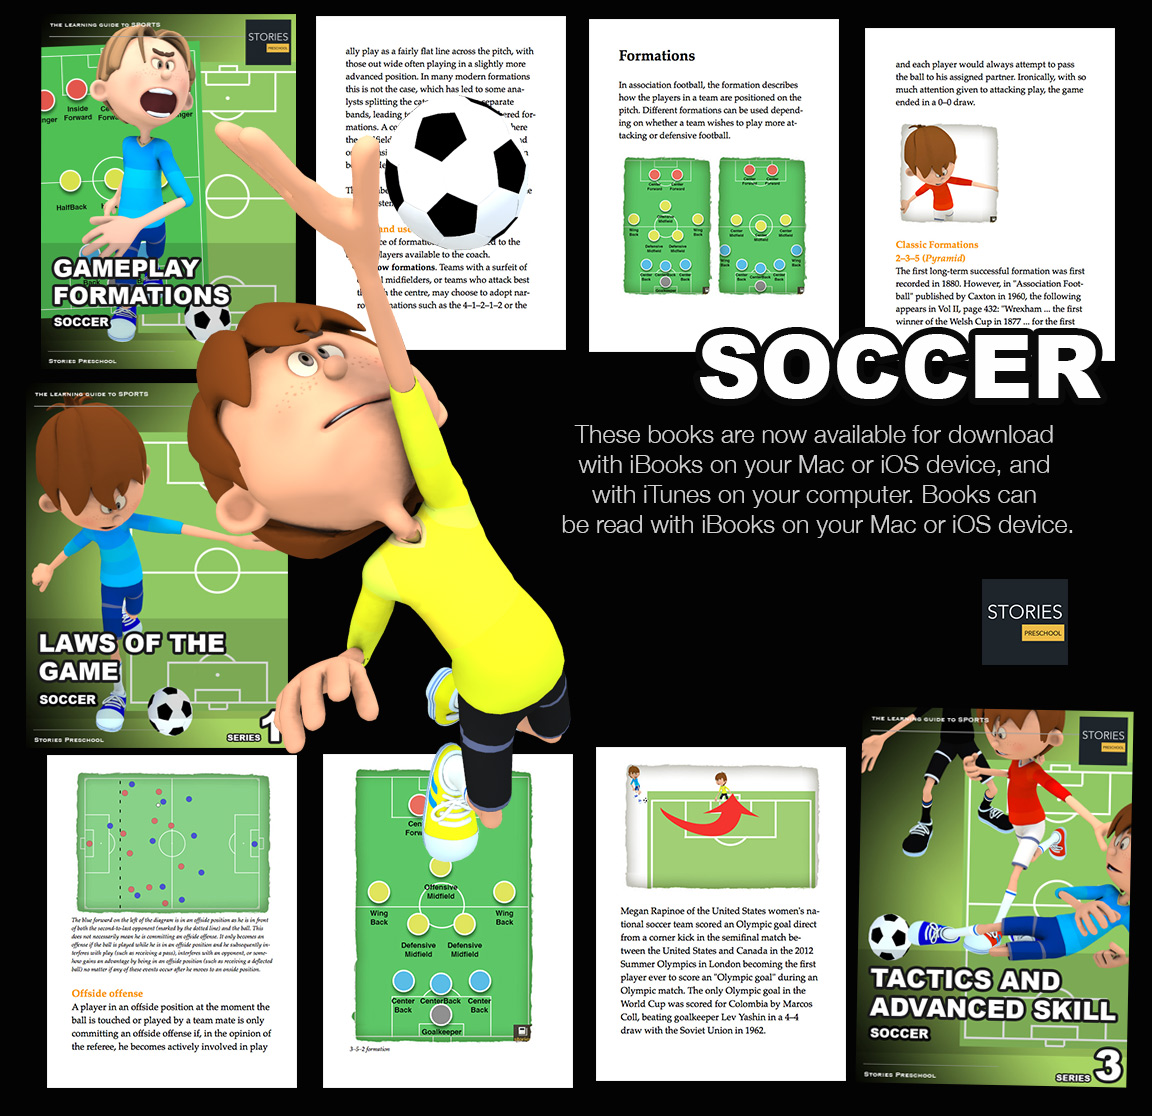 Soccer iBooks: Soccer is a sport played between two teams of eleven players with a spherical ball. The object of the game is to score by getting the ball into the opposing goal | Stories Preschool